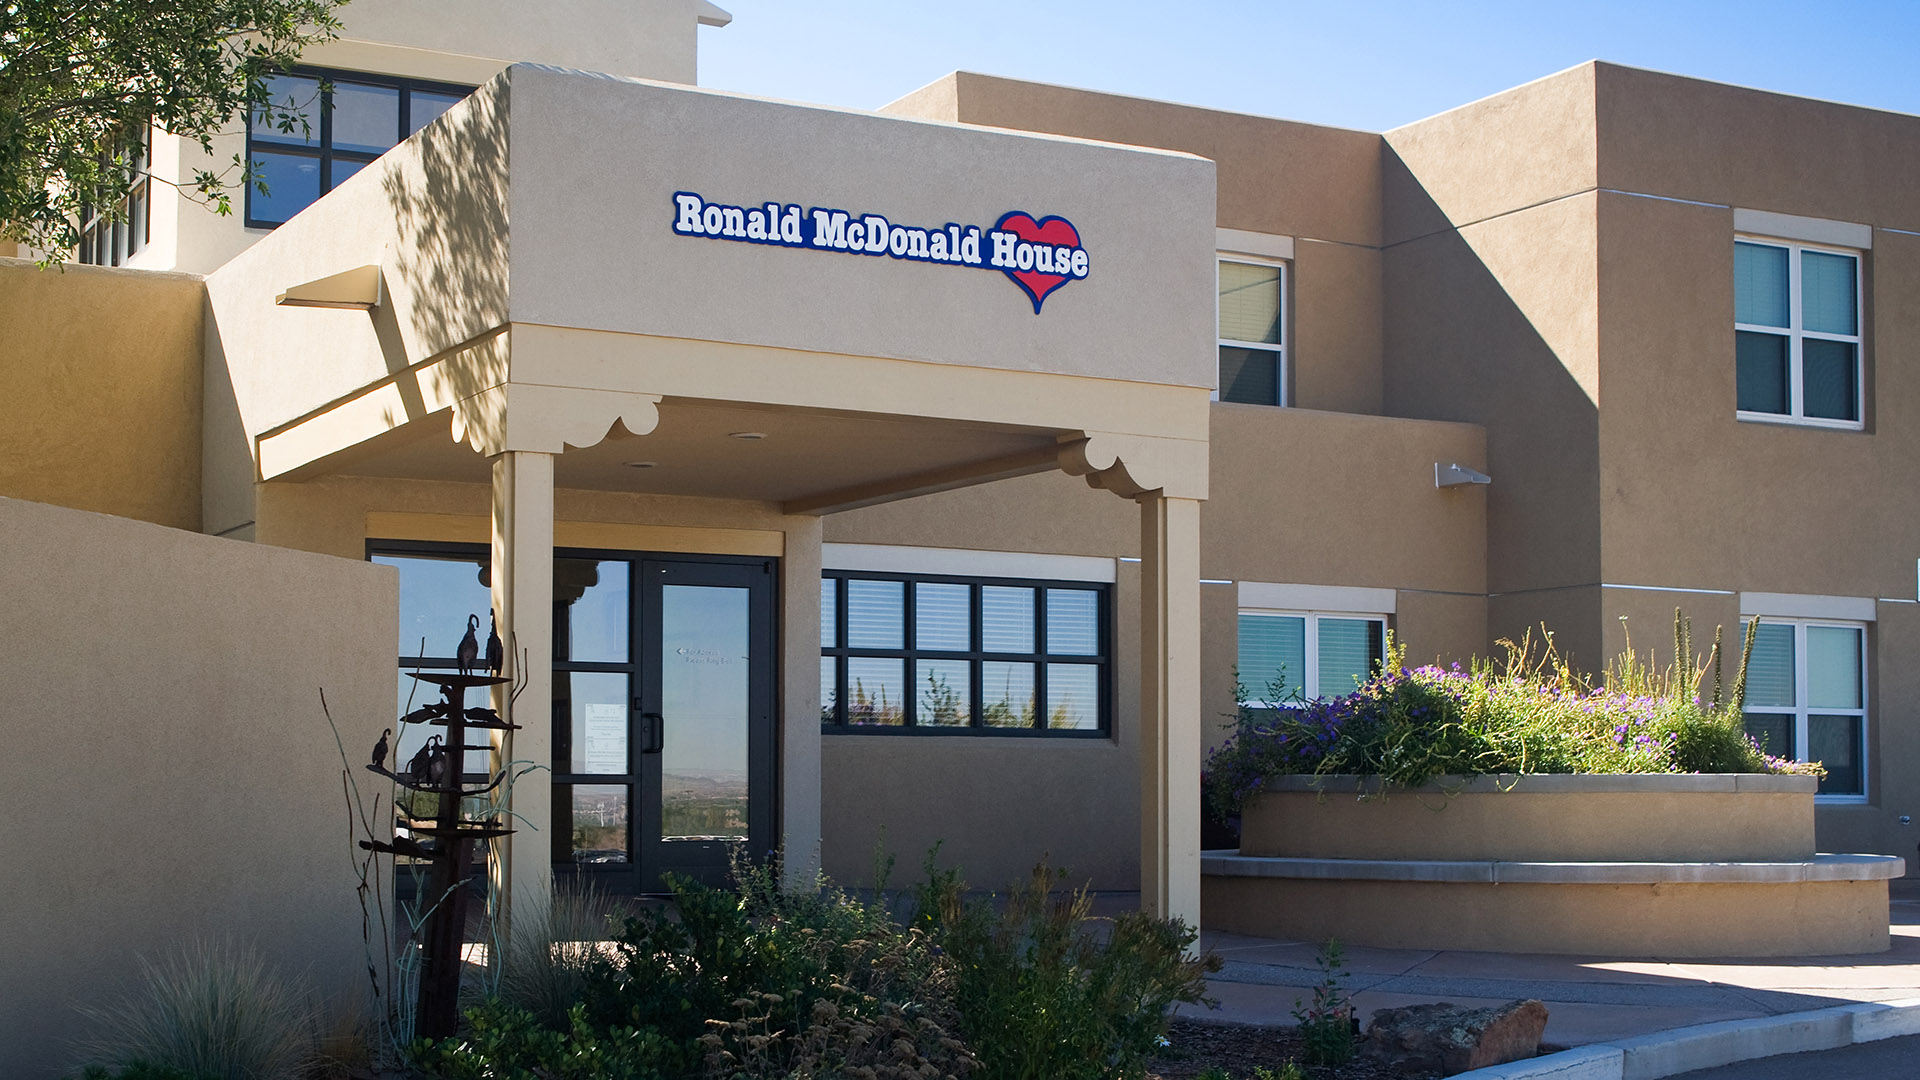 Ronald McDonald House of New Mexico